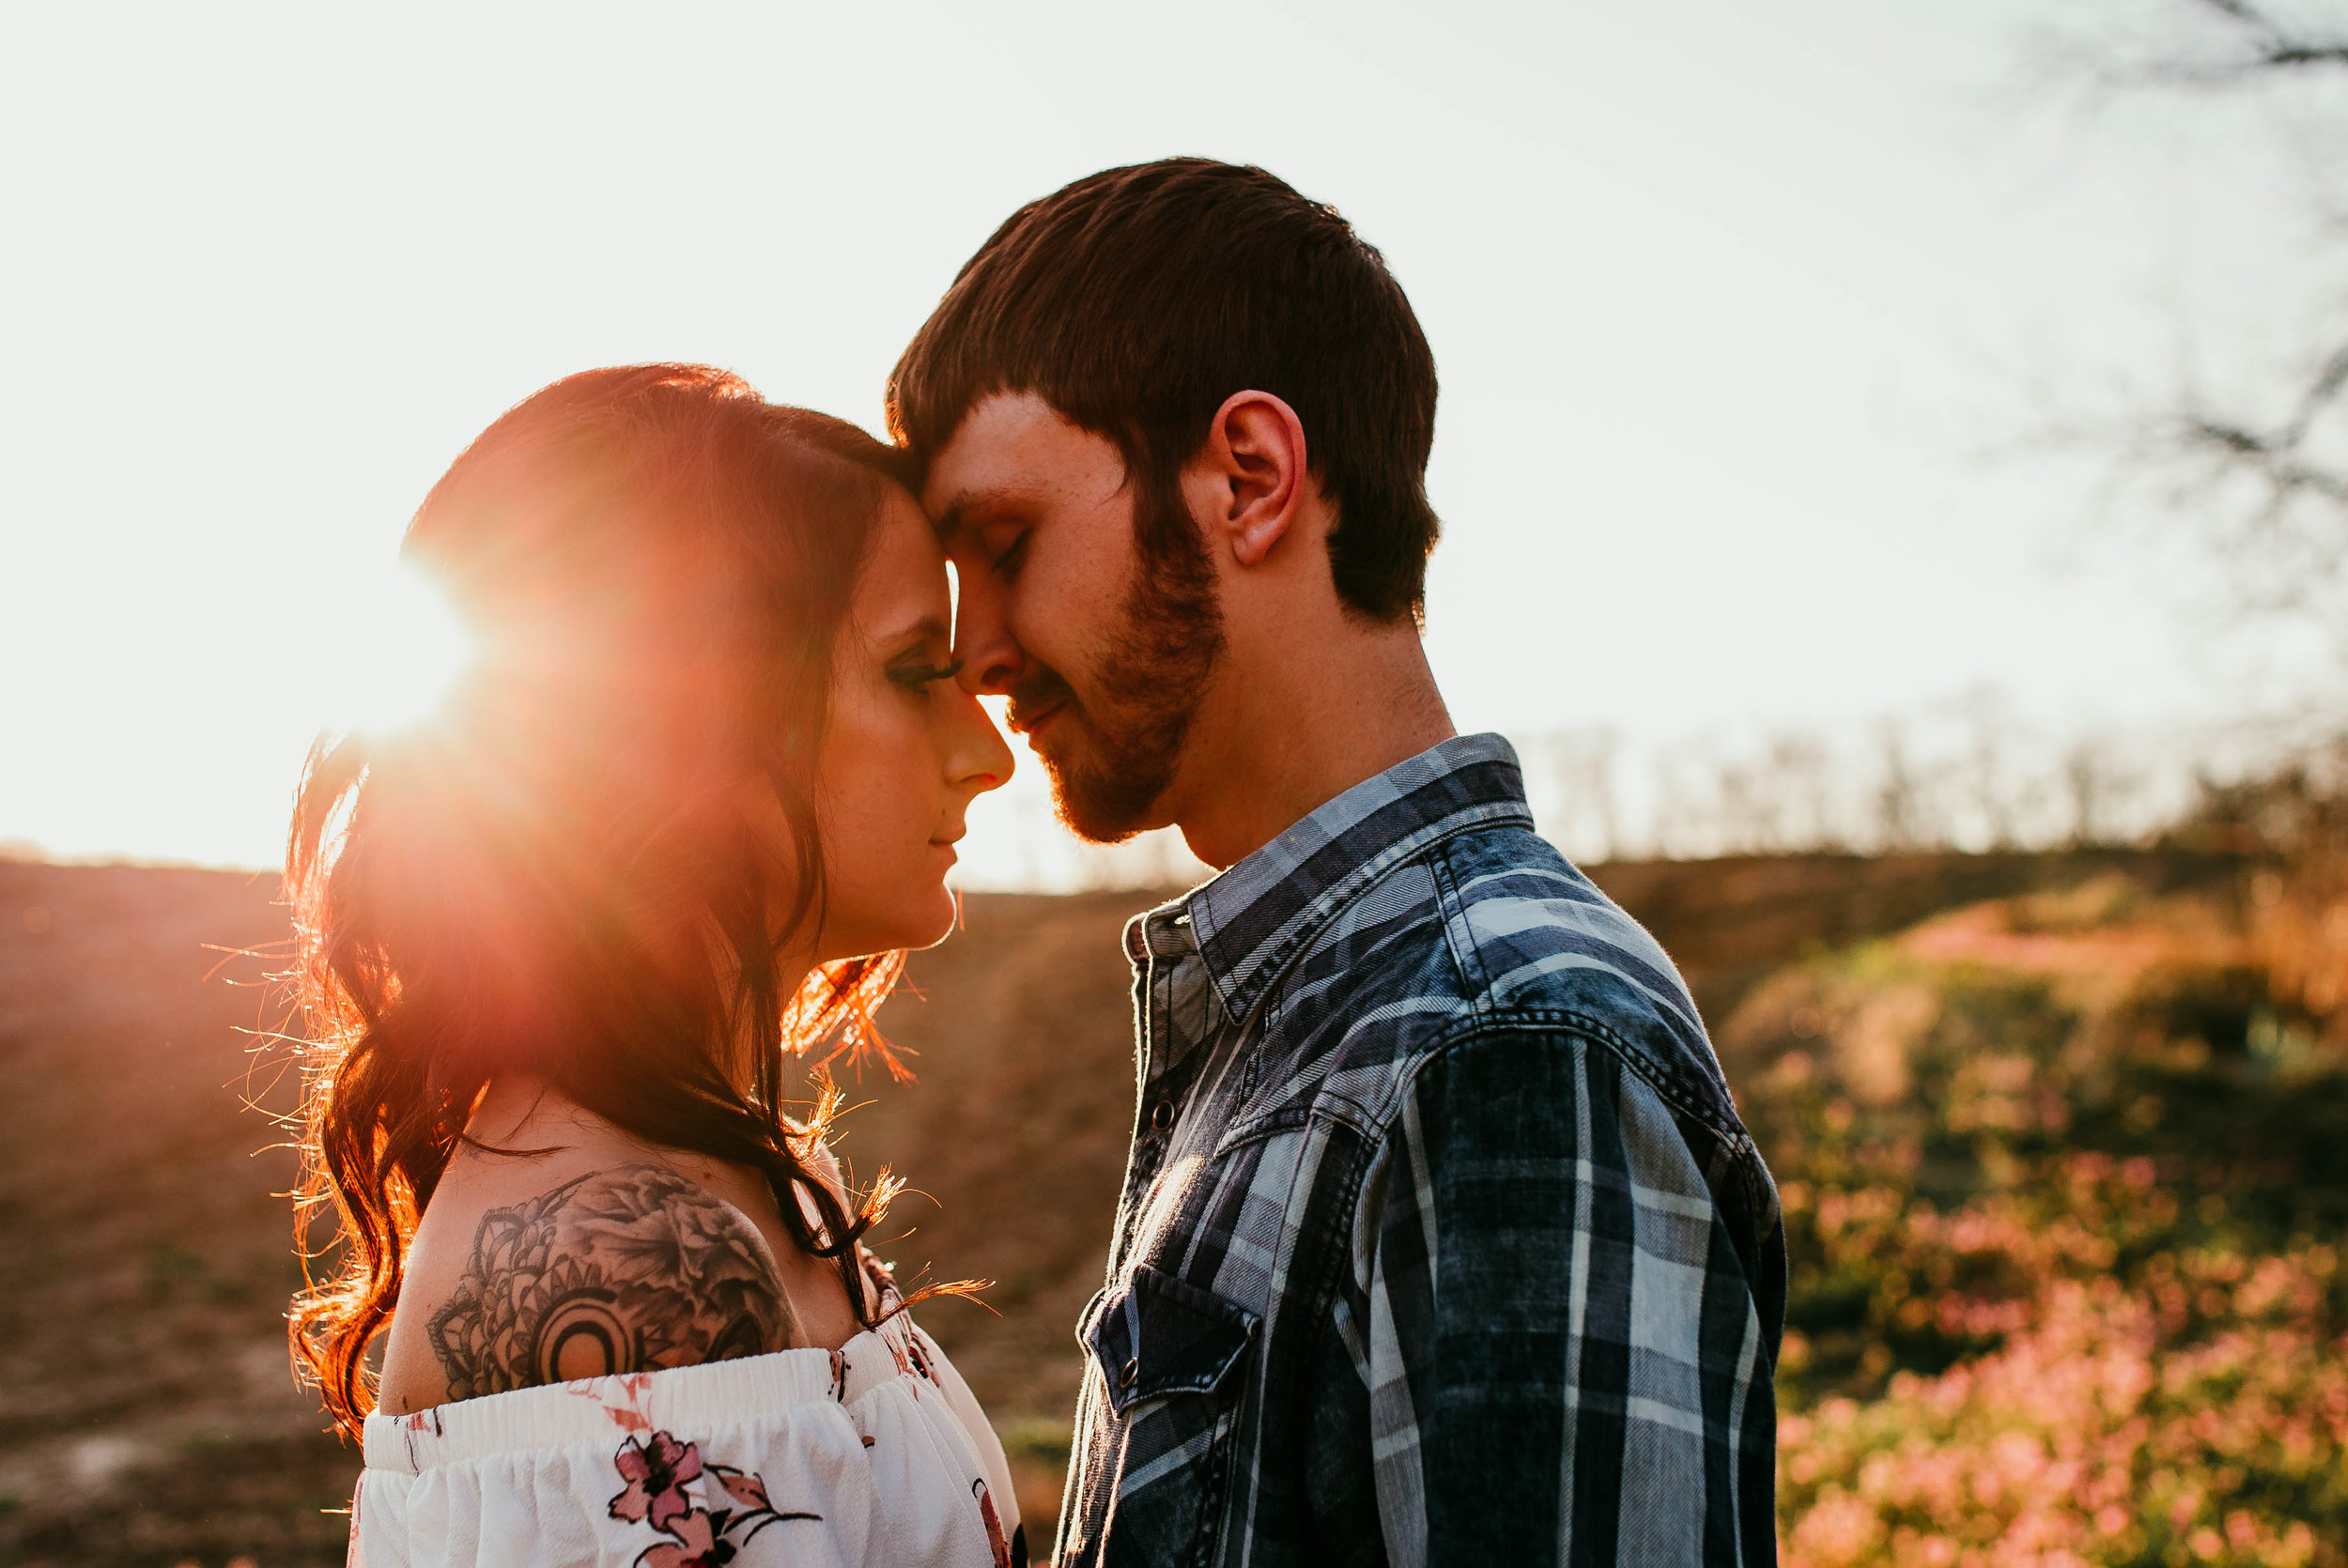 Dalton & Alexa Lexington, MO Engagement | Hannahill Photography | Kansas City Photographer | engaged couple adventure session | wedding photography midwest | chasing light | floral dress engagement session | sunset session | Big river ranch, Lexington, Mo